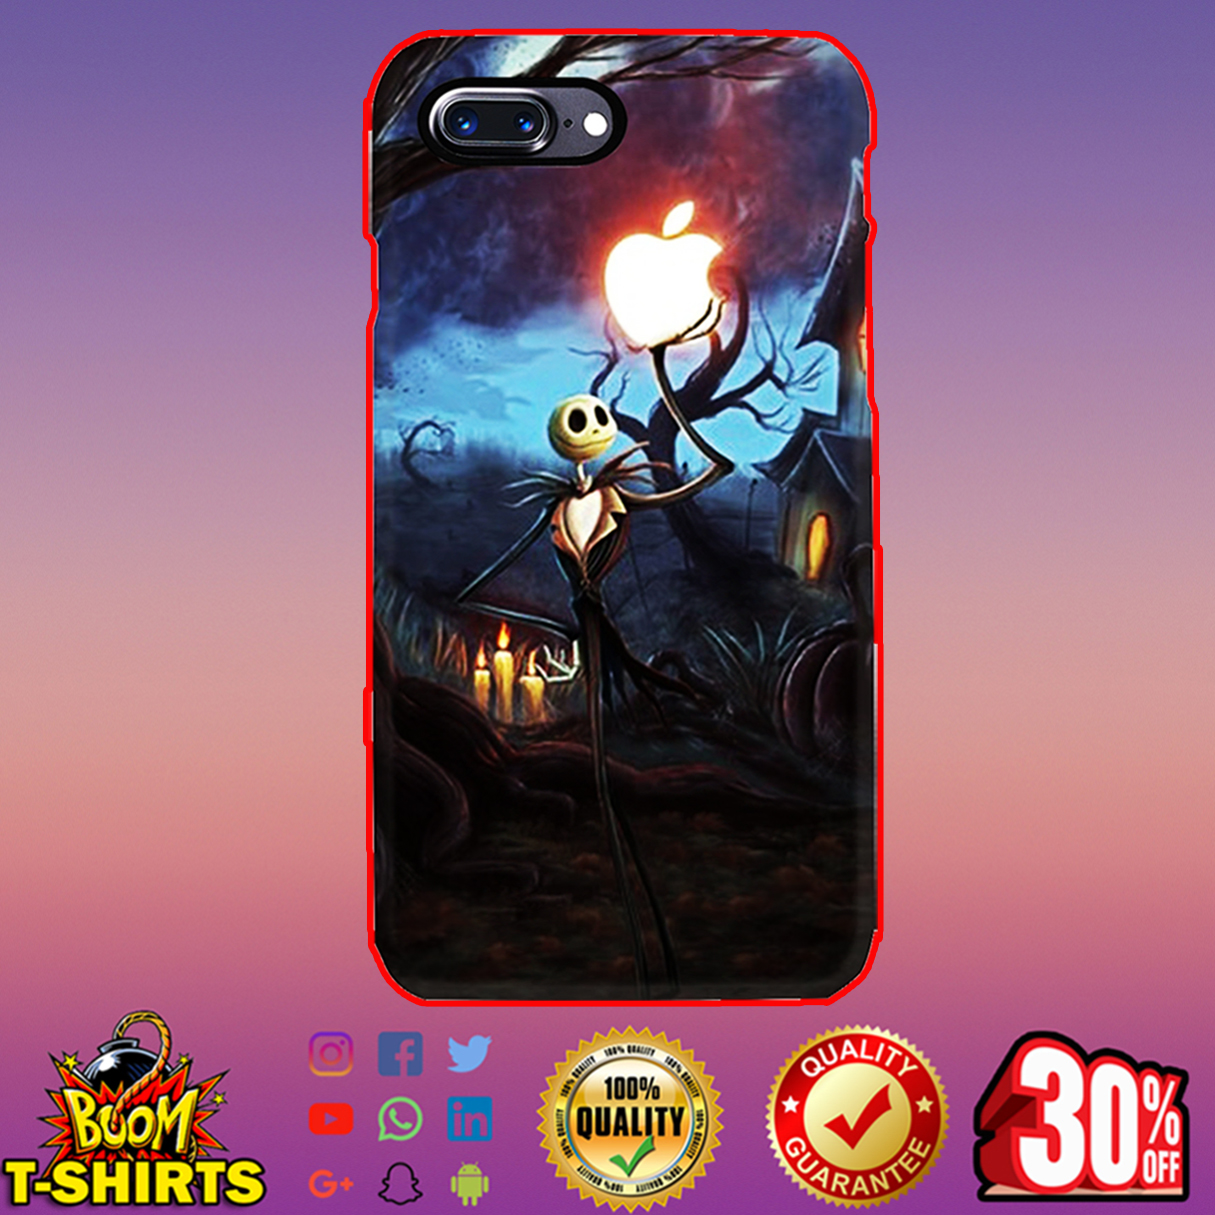 Jack Skellington Apple phone case - iphone 7 plus case